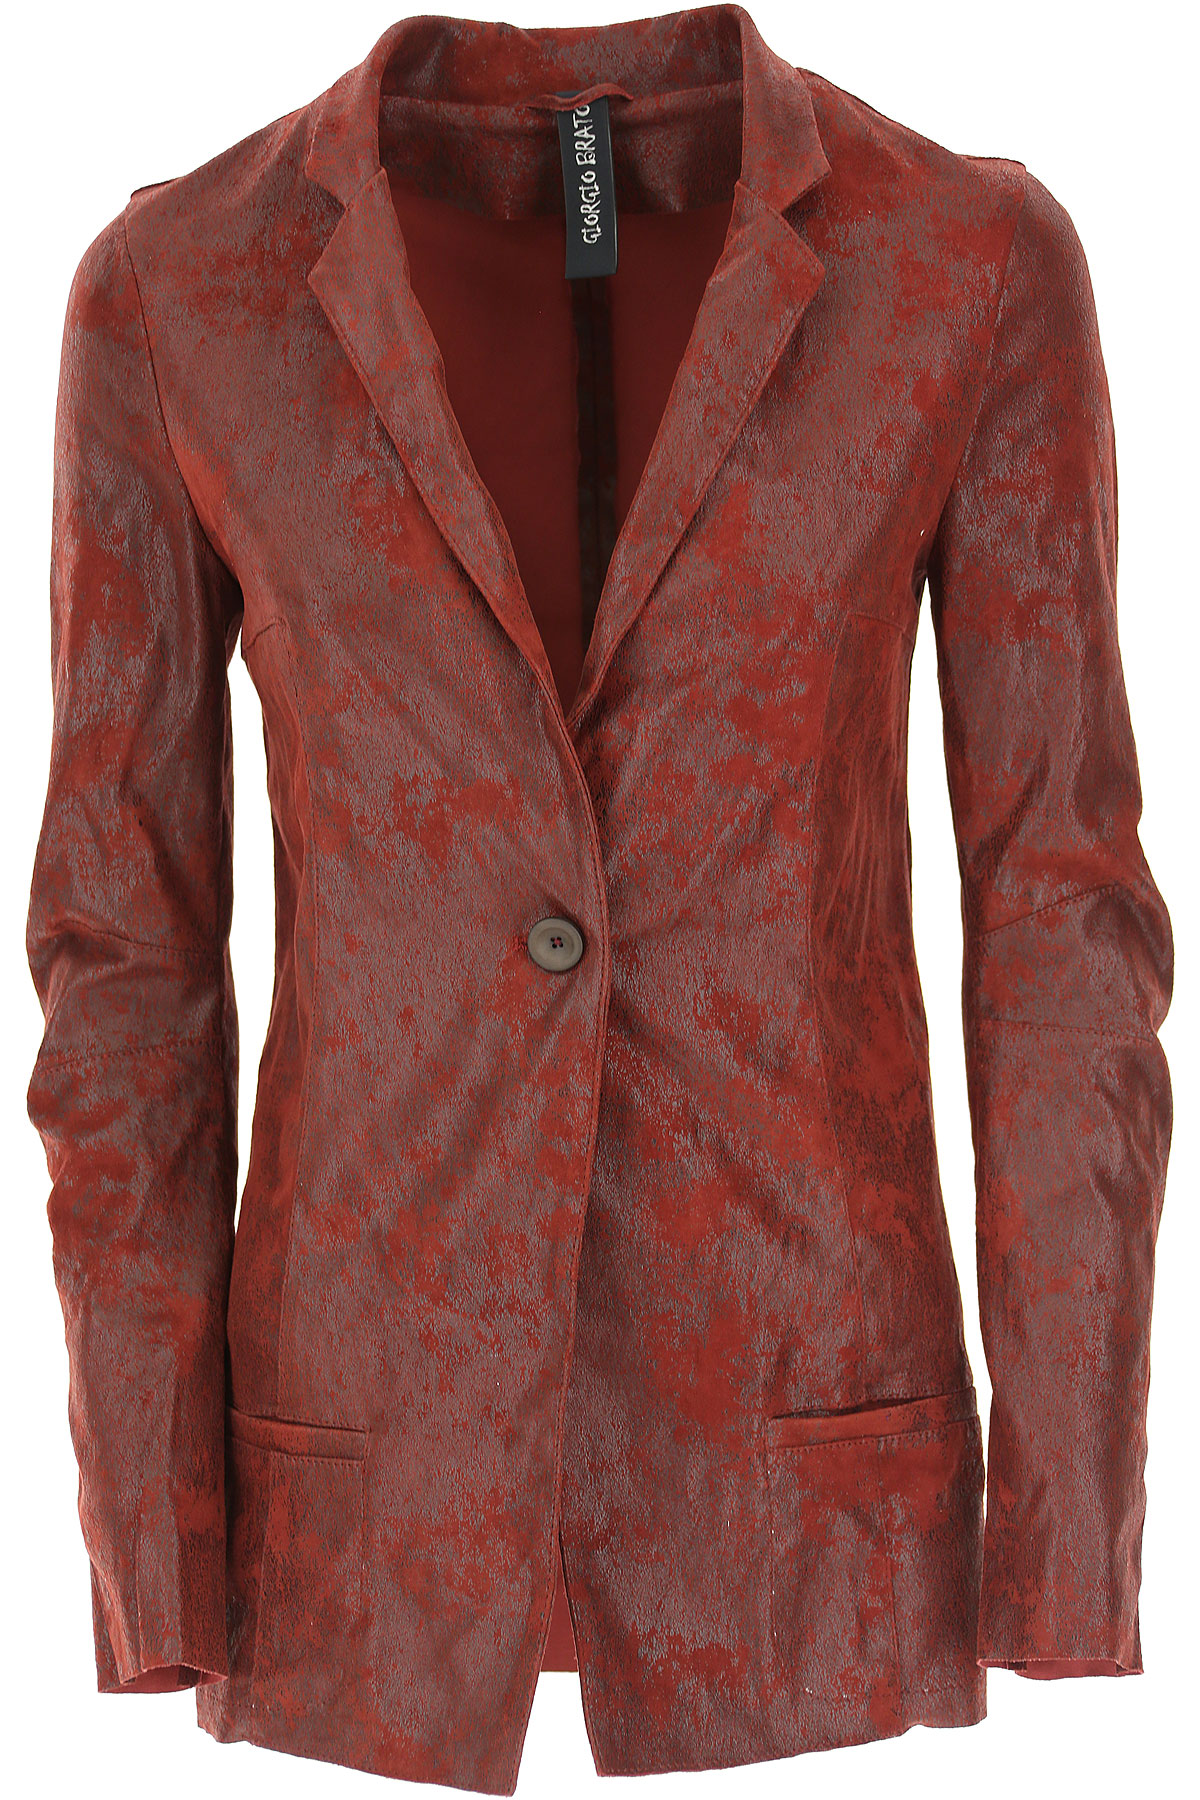 Image of WLG by Giorgio Brato Leather Jacket for Women, Wine, Leather, 2017, 10 4 6 8